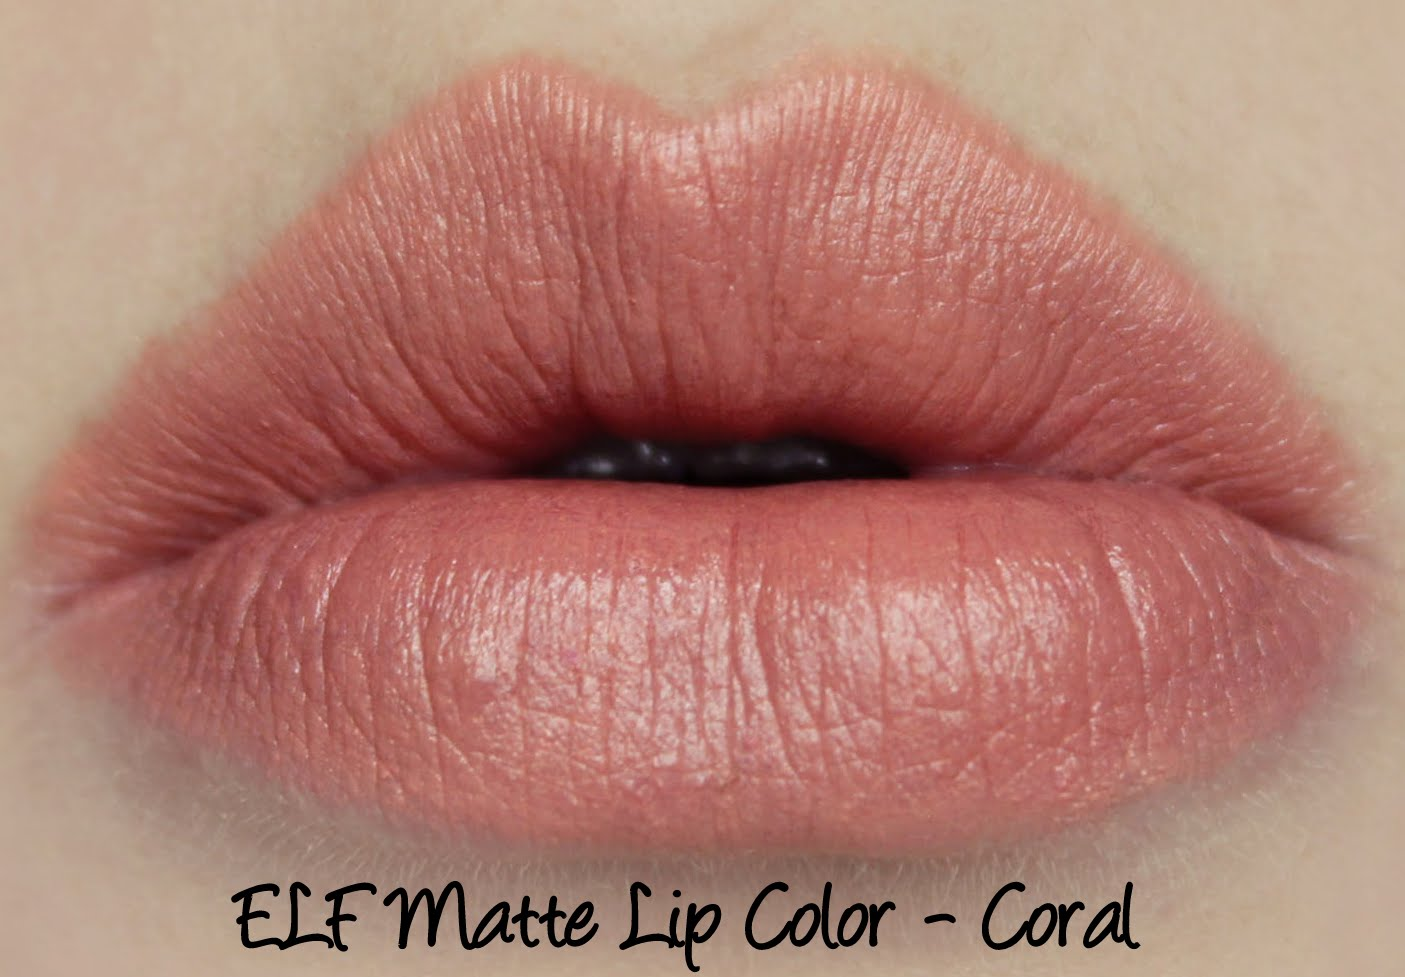 ELF Matte Lip Color - Coral and Praline Swatches & Review - Lani Loves